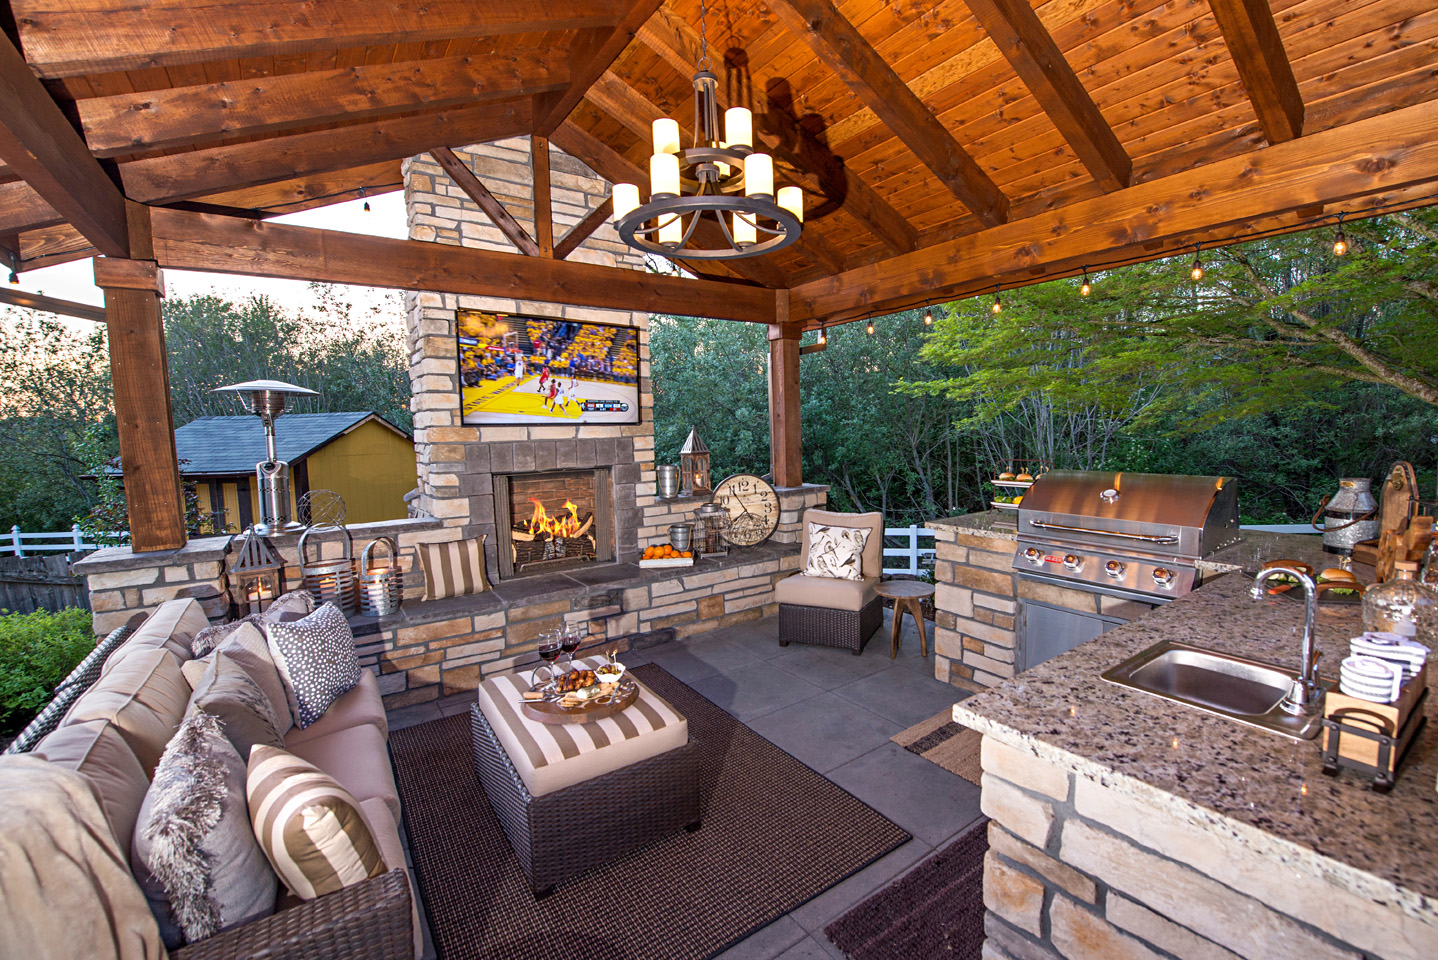 'Its Got It All' - outdoor living room with mini-kitchen, fireplace wall, TV,  grill, bar with bar stools, outdoor lighting, & the kitchen sink!